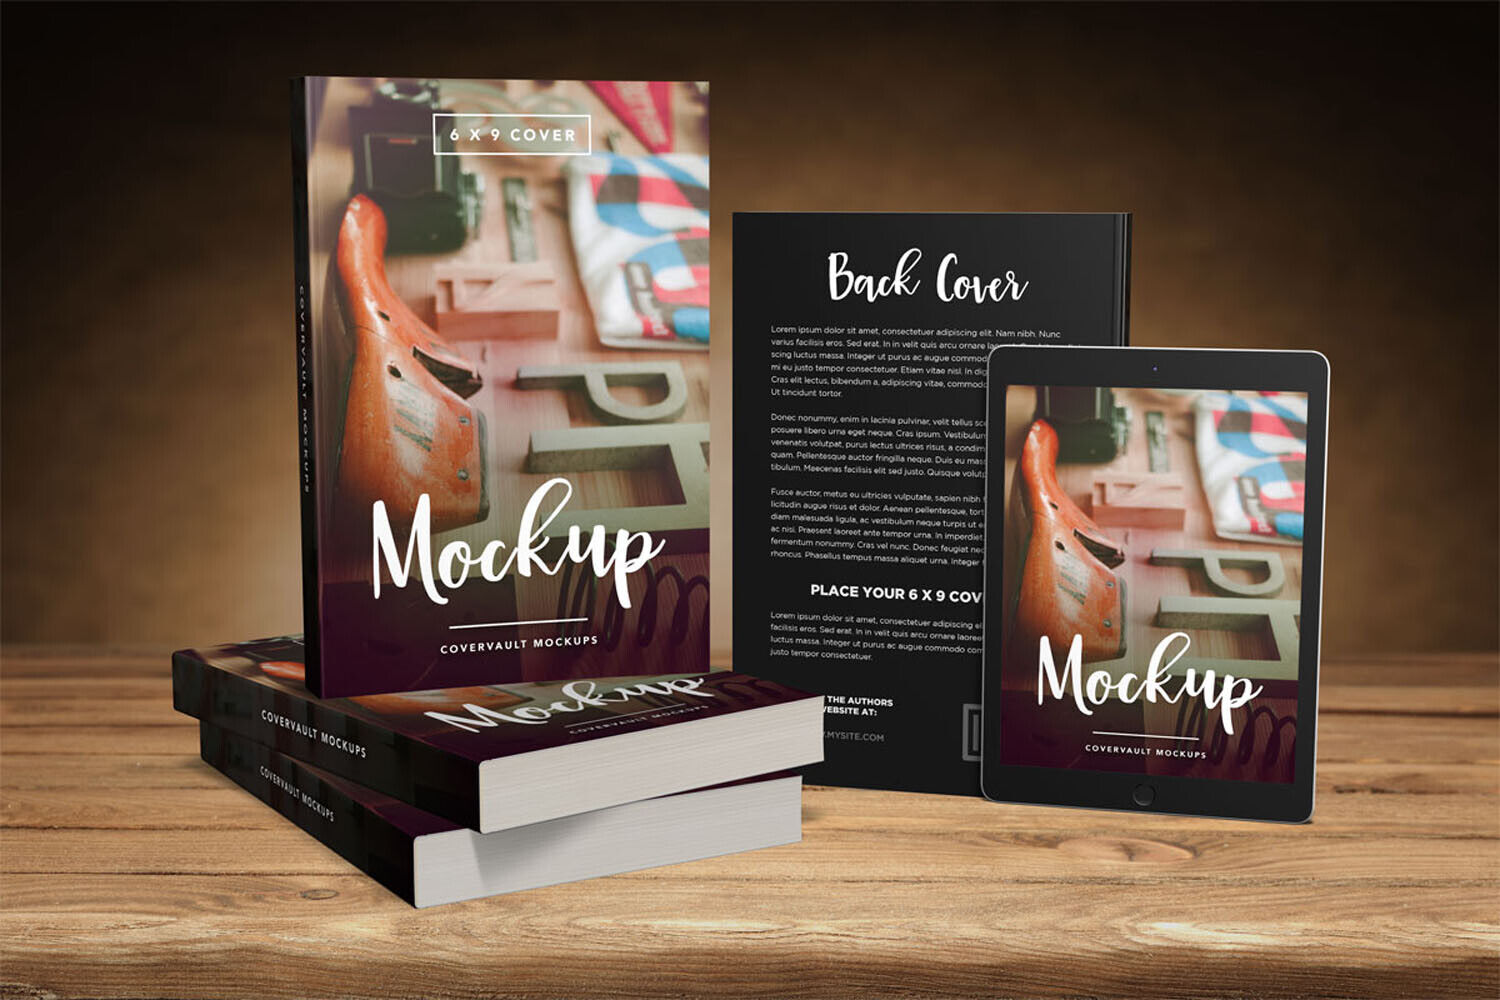 Create 3D Box Set, Book, DVD Cover Eye Catching From Your 2D Cover - $9.99